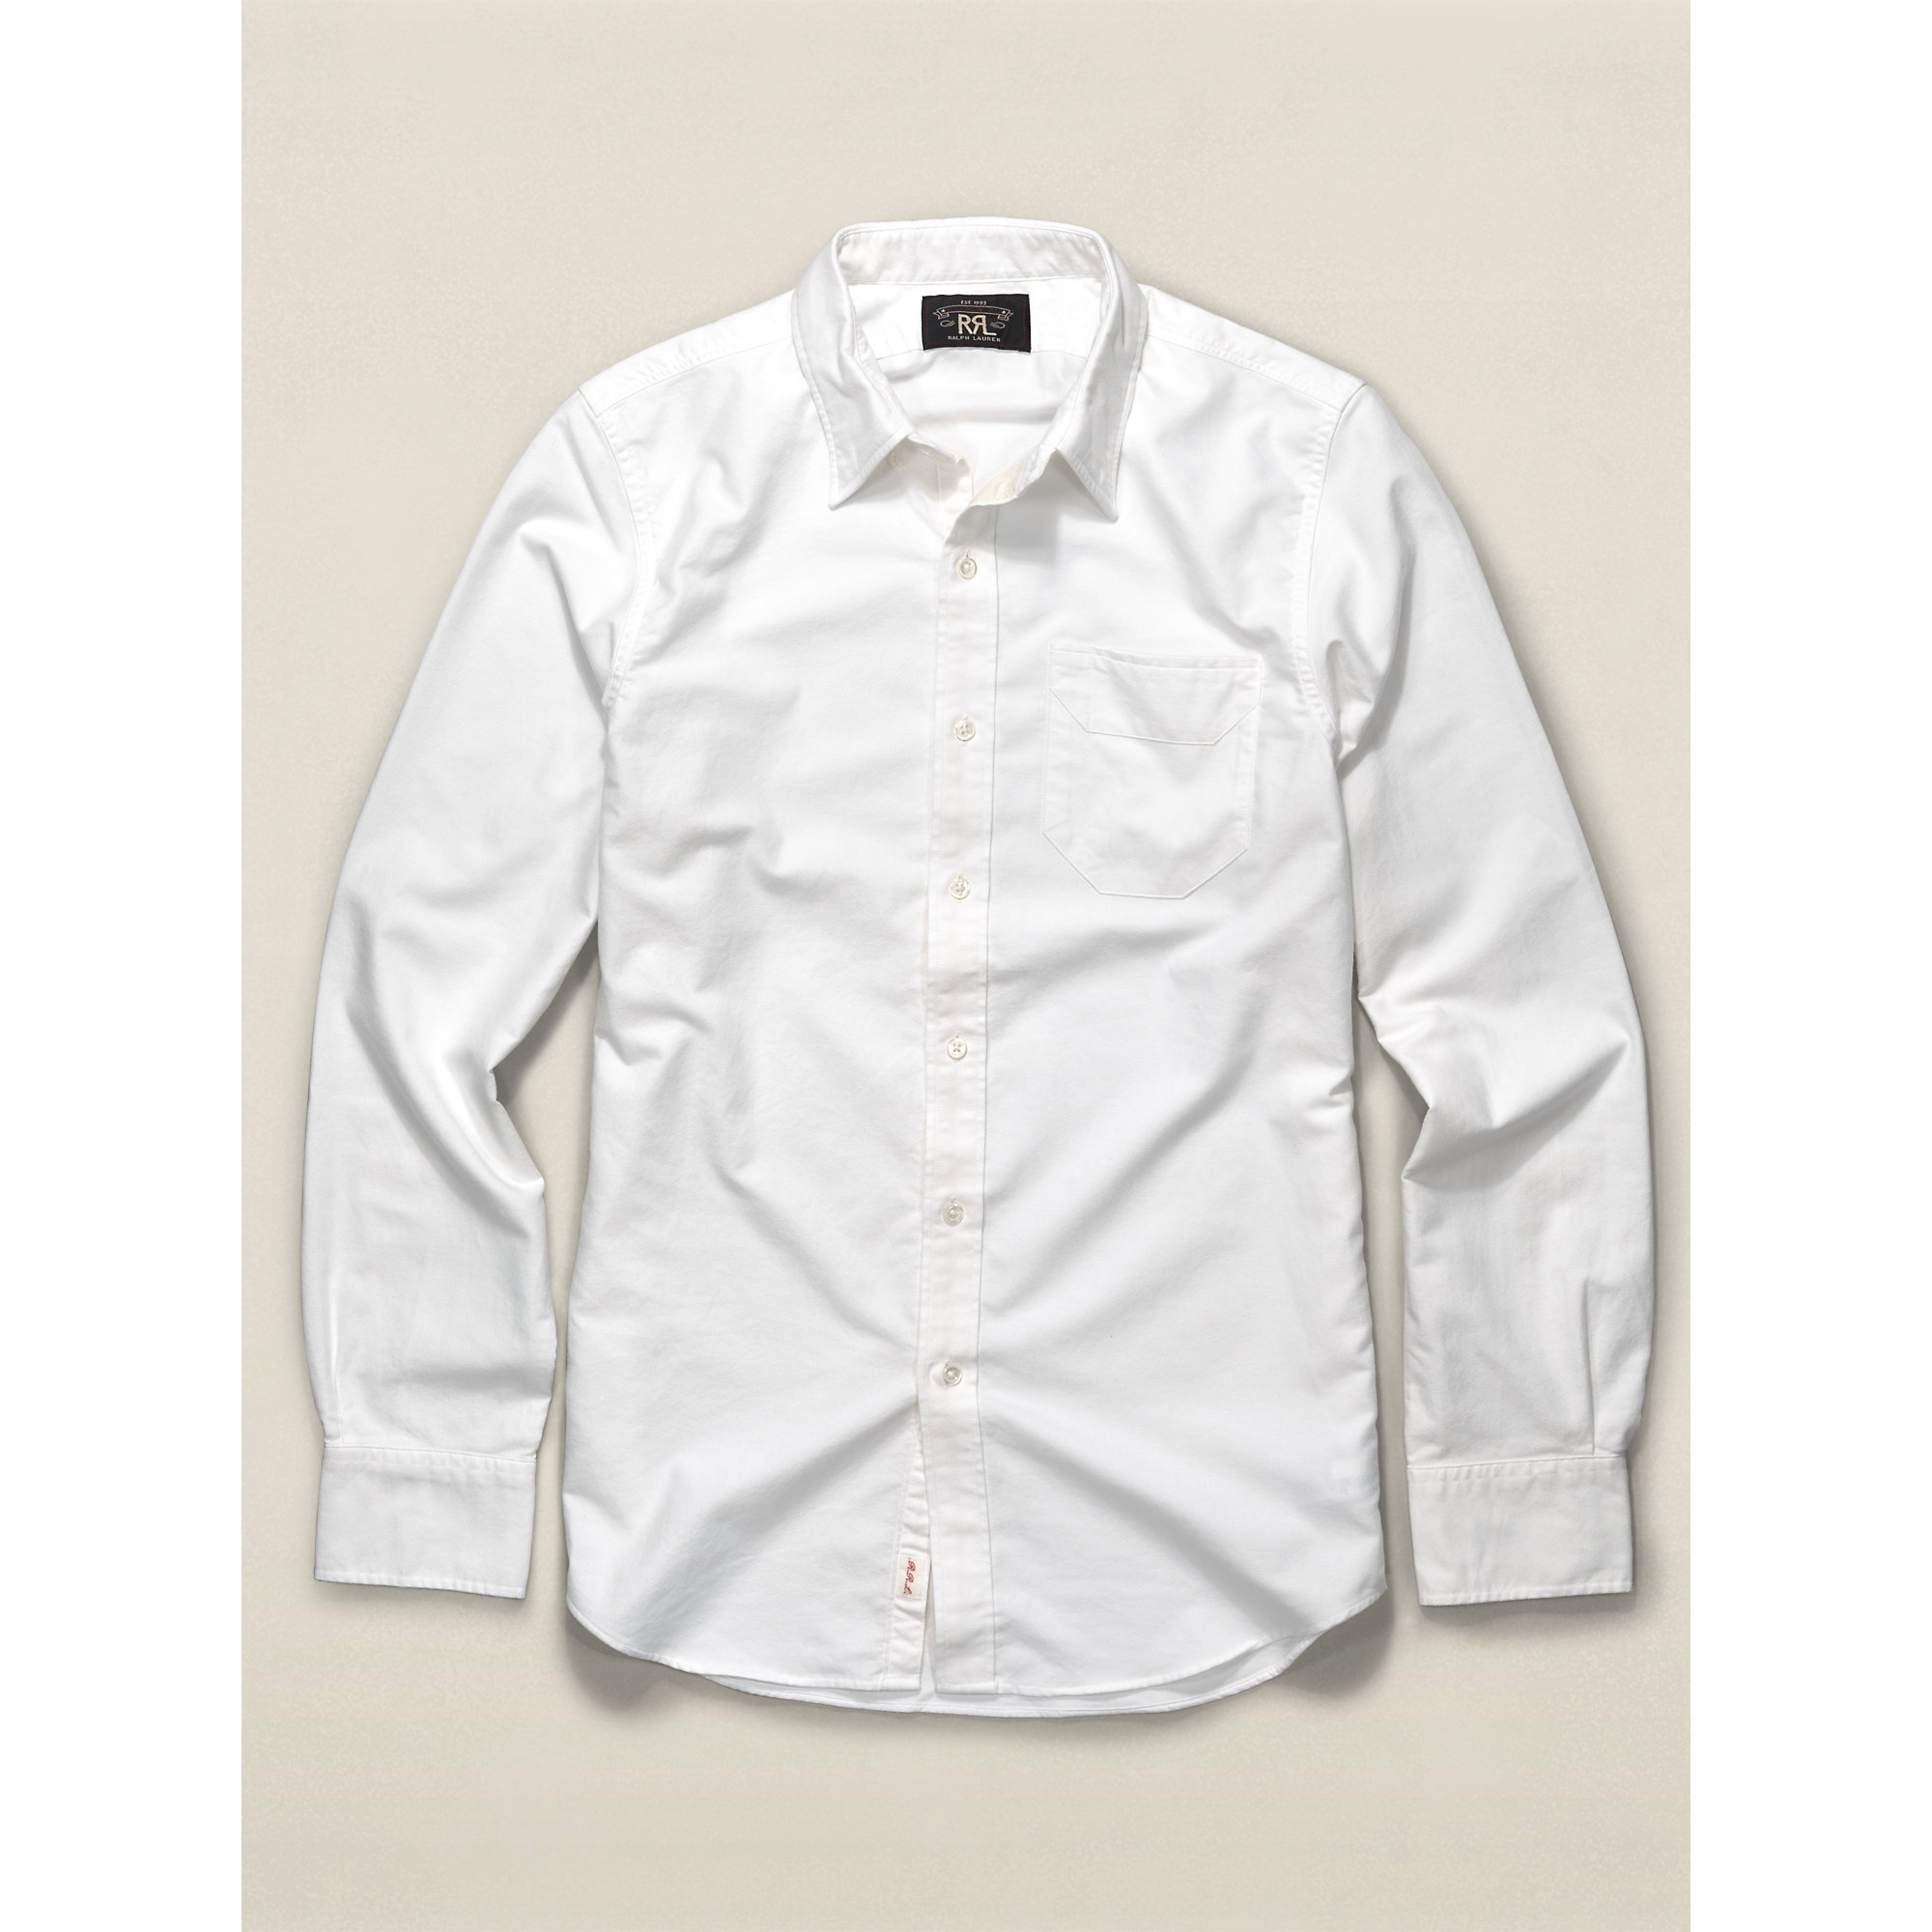 Rrl Cotton Oxford Shirt In White For Men Lyst